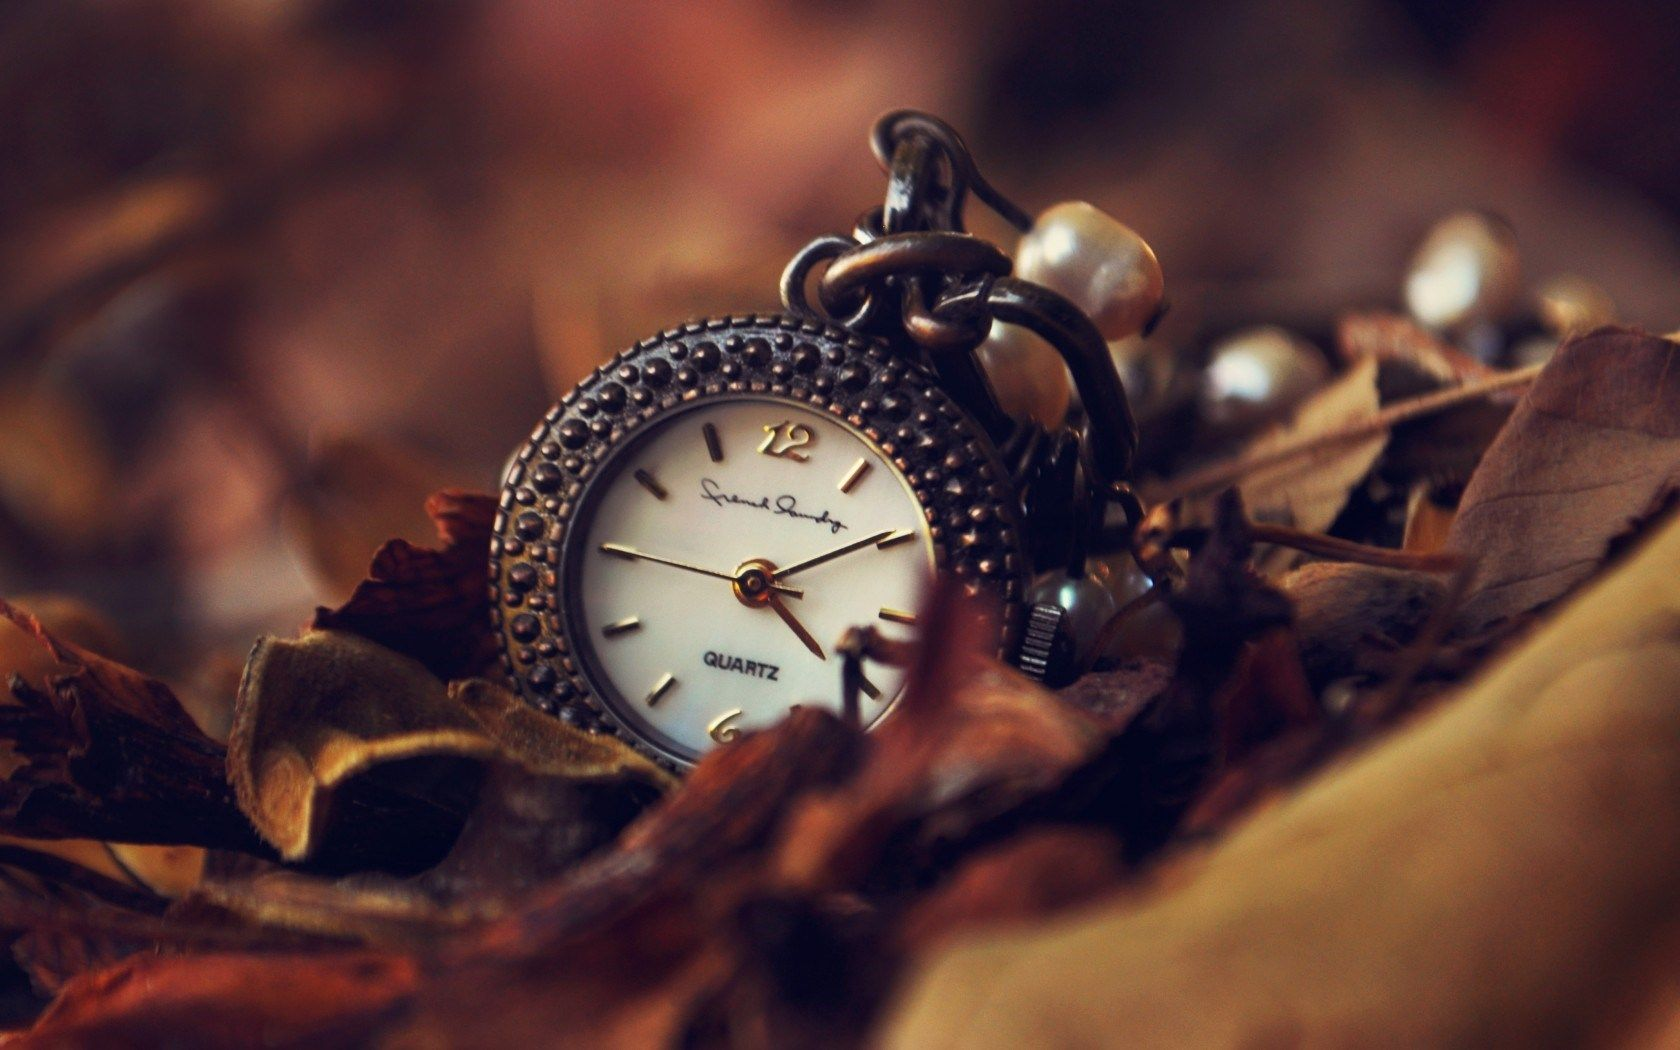 Vintage Clock Wallpapers - Top Free